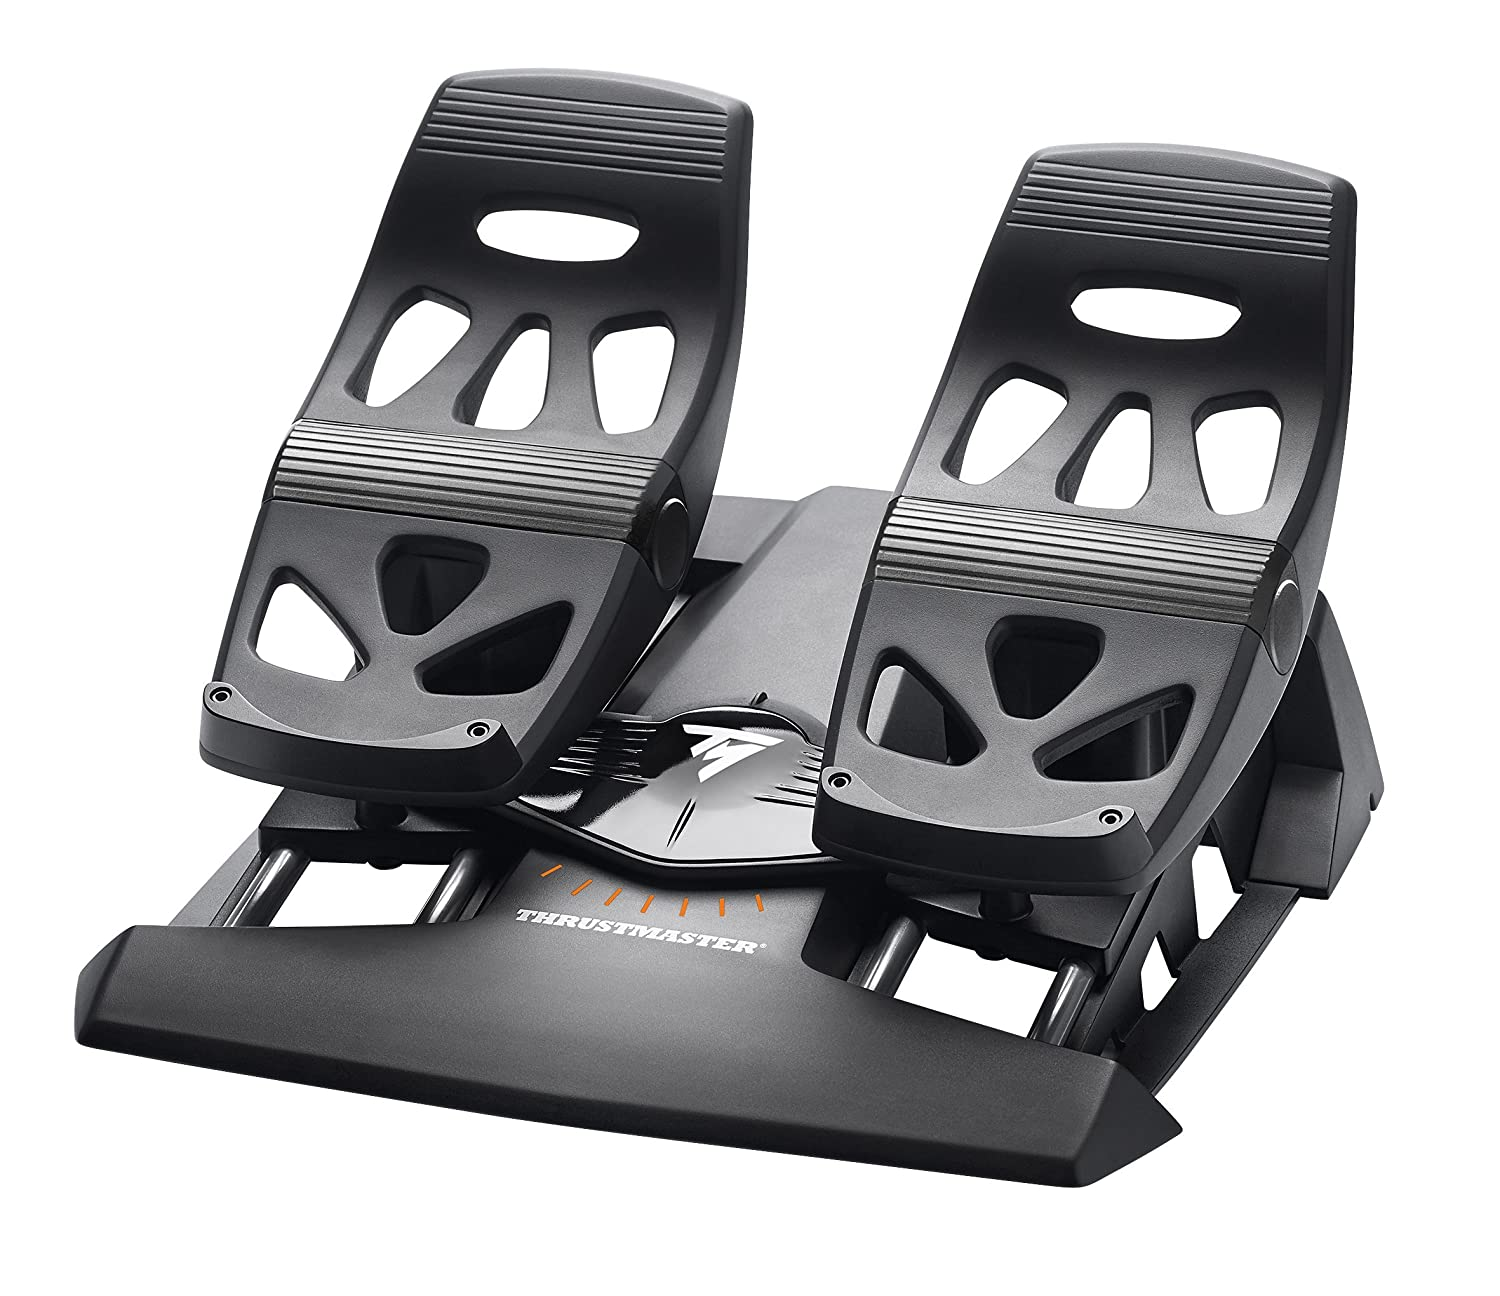 T.16000M FCS Space Sim Duo: combine two T.16000M FCS joysticks to let gamers play with their left and right hands simultaneously Thrustmaster 2960815